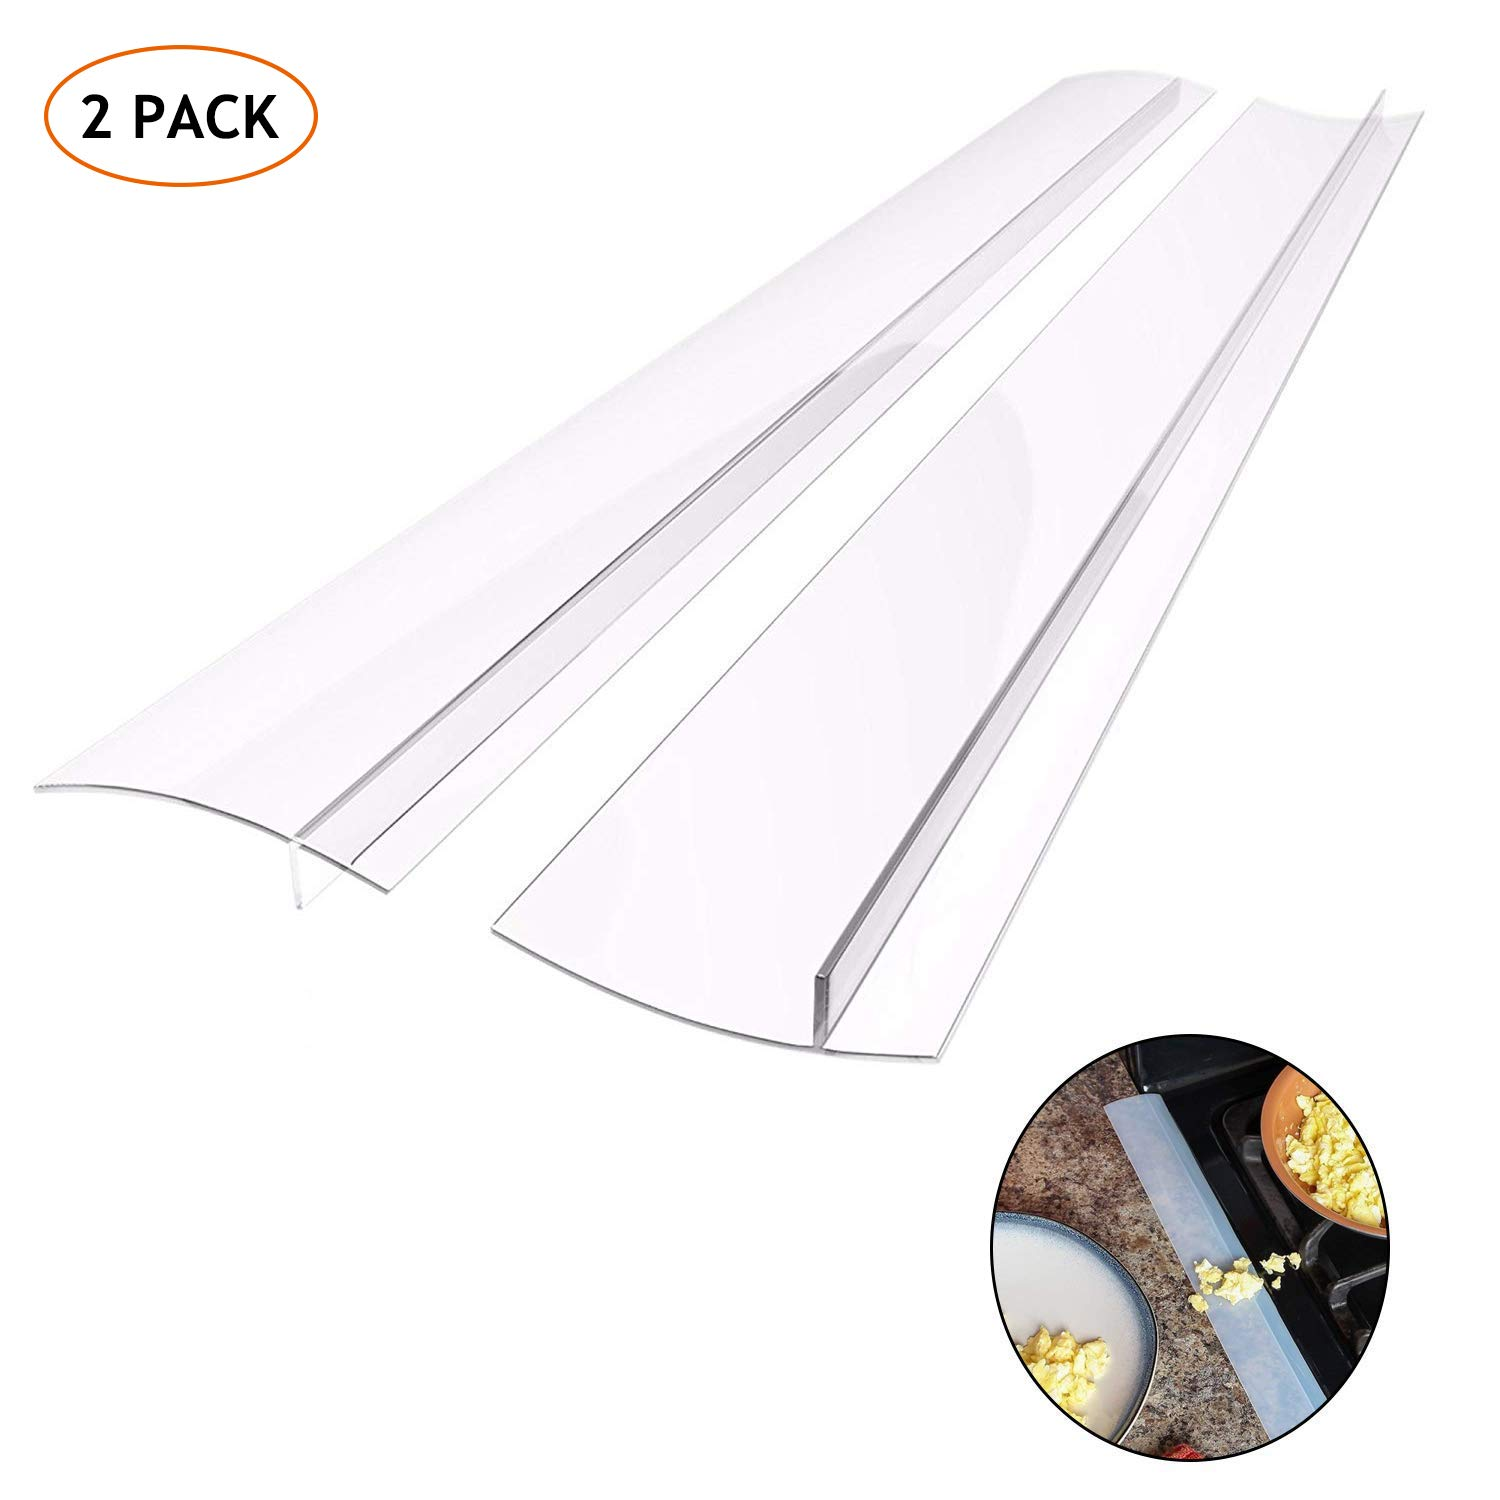 """Silicone Gap Cover, (2 PACK) Silicone Gap Stopper Kitchen Stove Counter Gap Covers - 21"""" Flexible Stove Space Fillers, Food Grade, Non-toxic, Clear"""